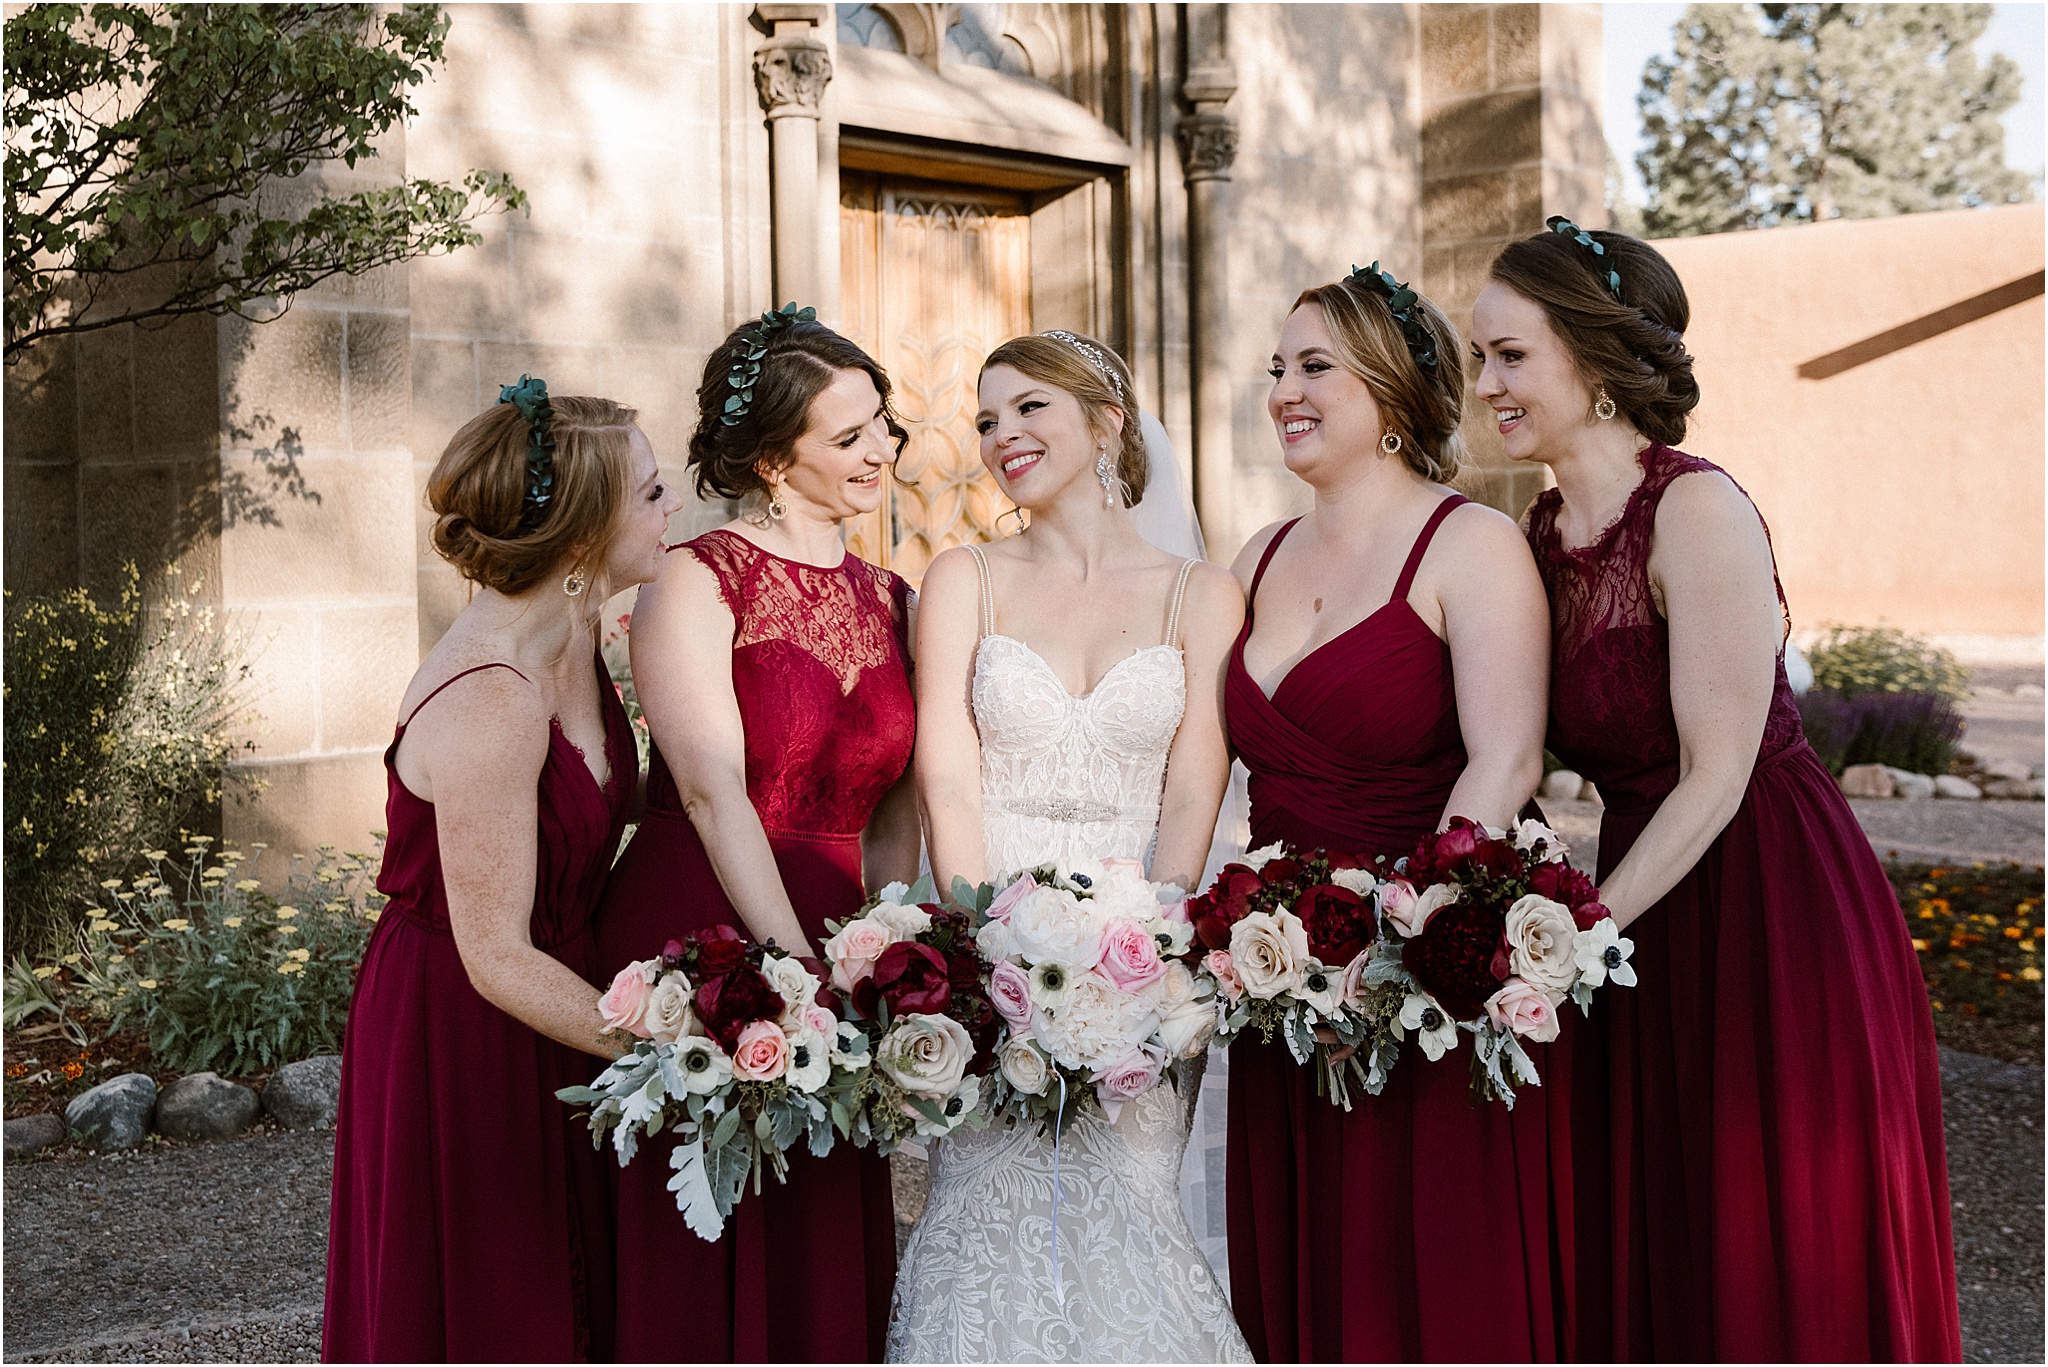 BLUE ROSE PHOTOGRAPHY SANTA FE WEDDING_30